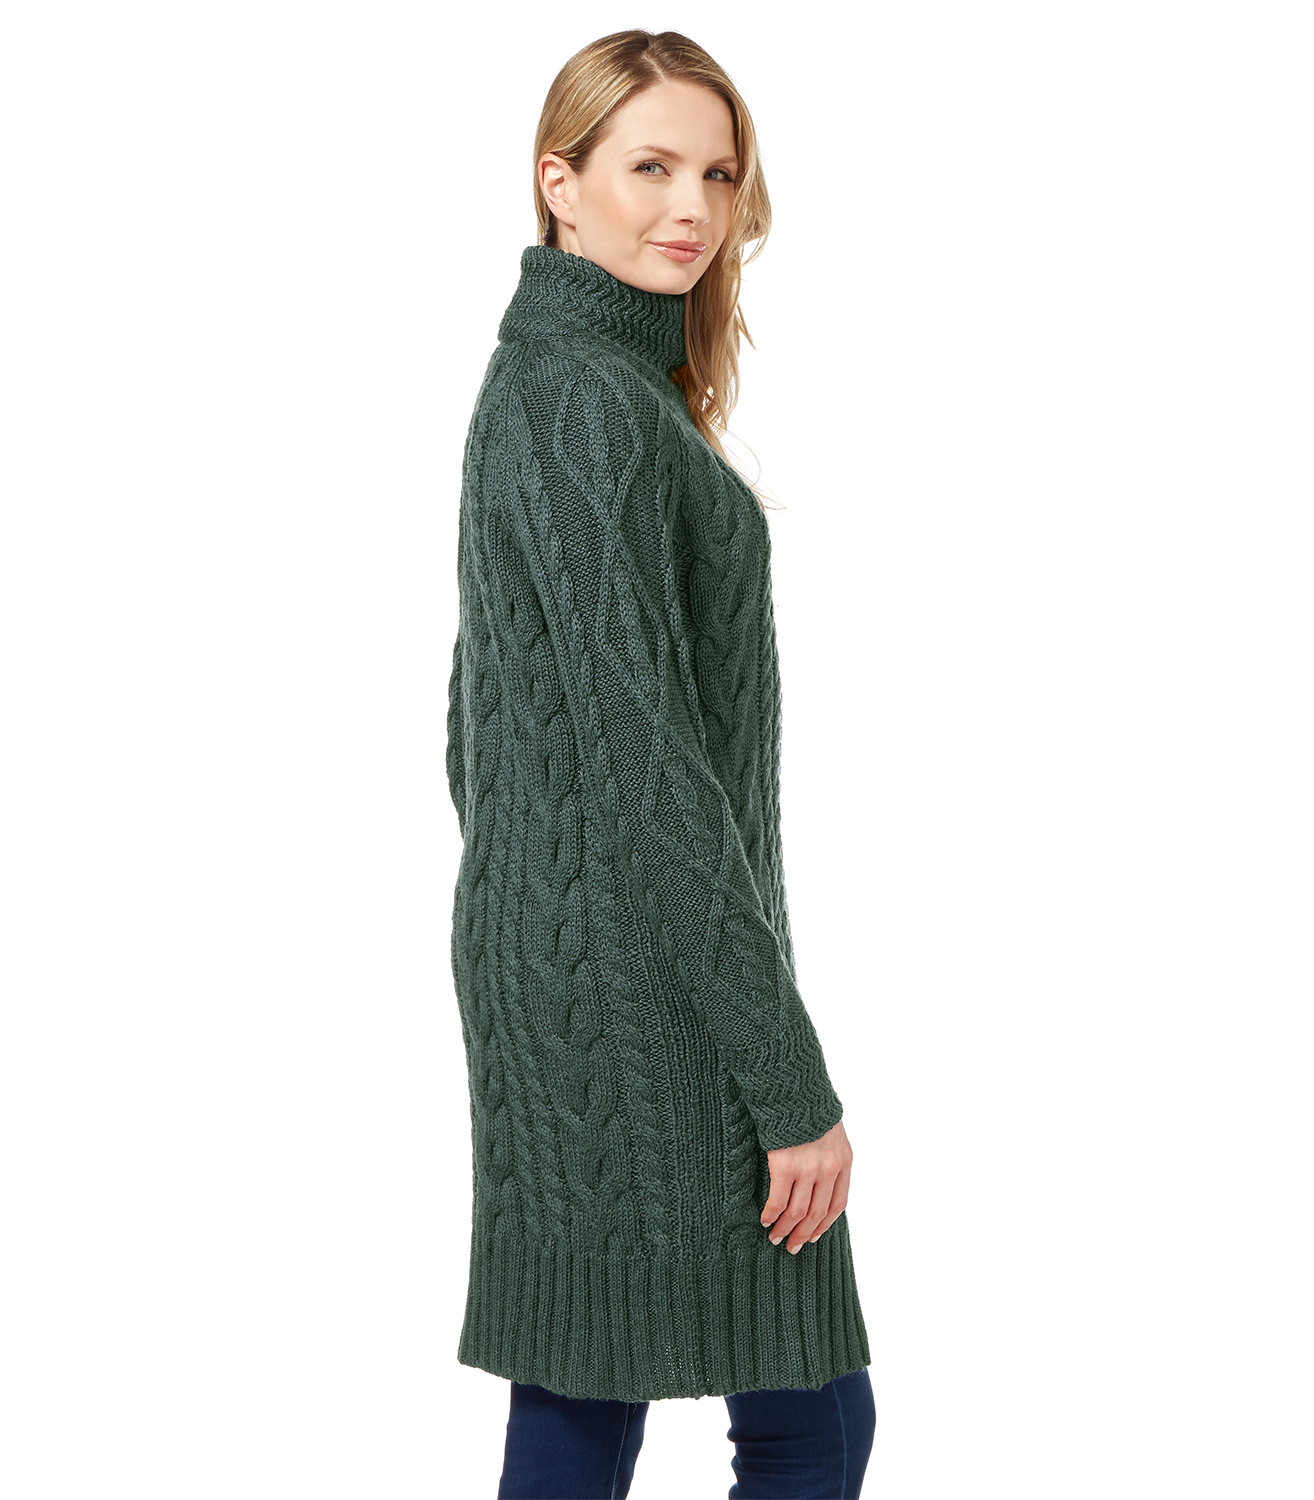 Not to brag, but we're kind of famous for our classic, comfy, high-quality women's sweaters and sweatshirts. When the temperature drops a bit, you're going to want a comfy cardigan or pullover, but when it really drops you'll want to wear a timelessly designed wool coat or jacket for extra warmth.